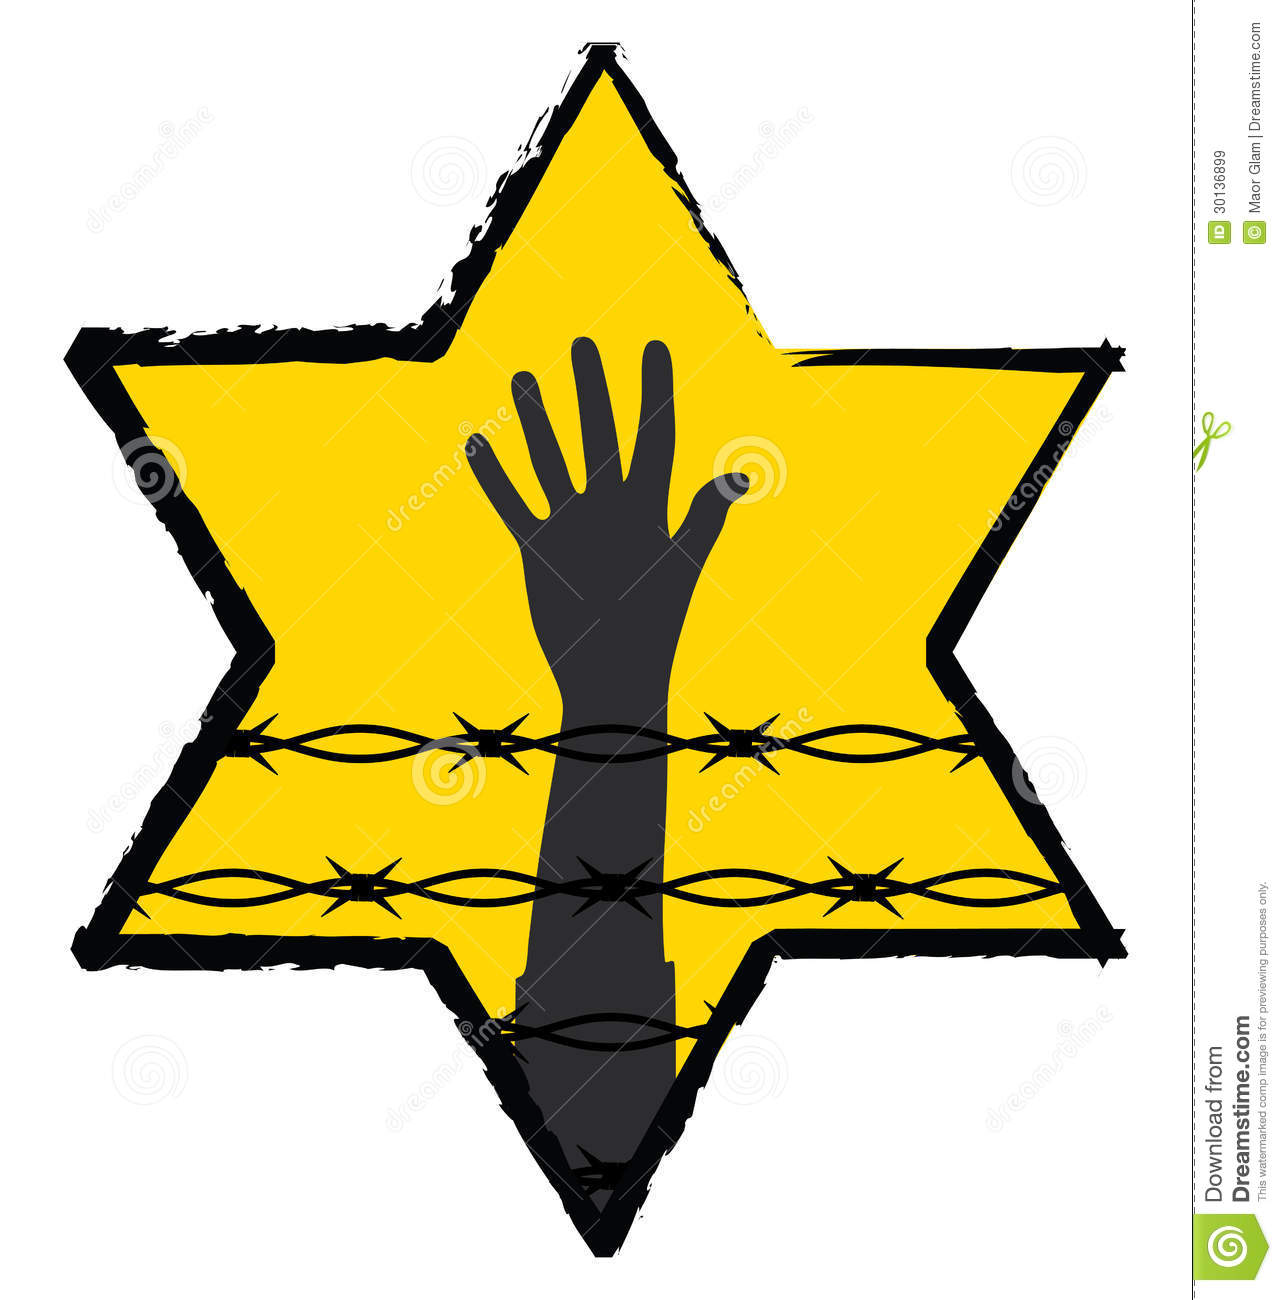 Peace Sign clipart genocide Genocide holocaust holocaust Search and